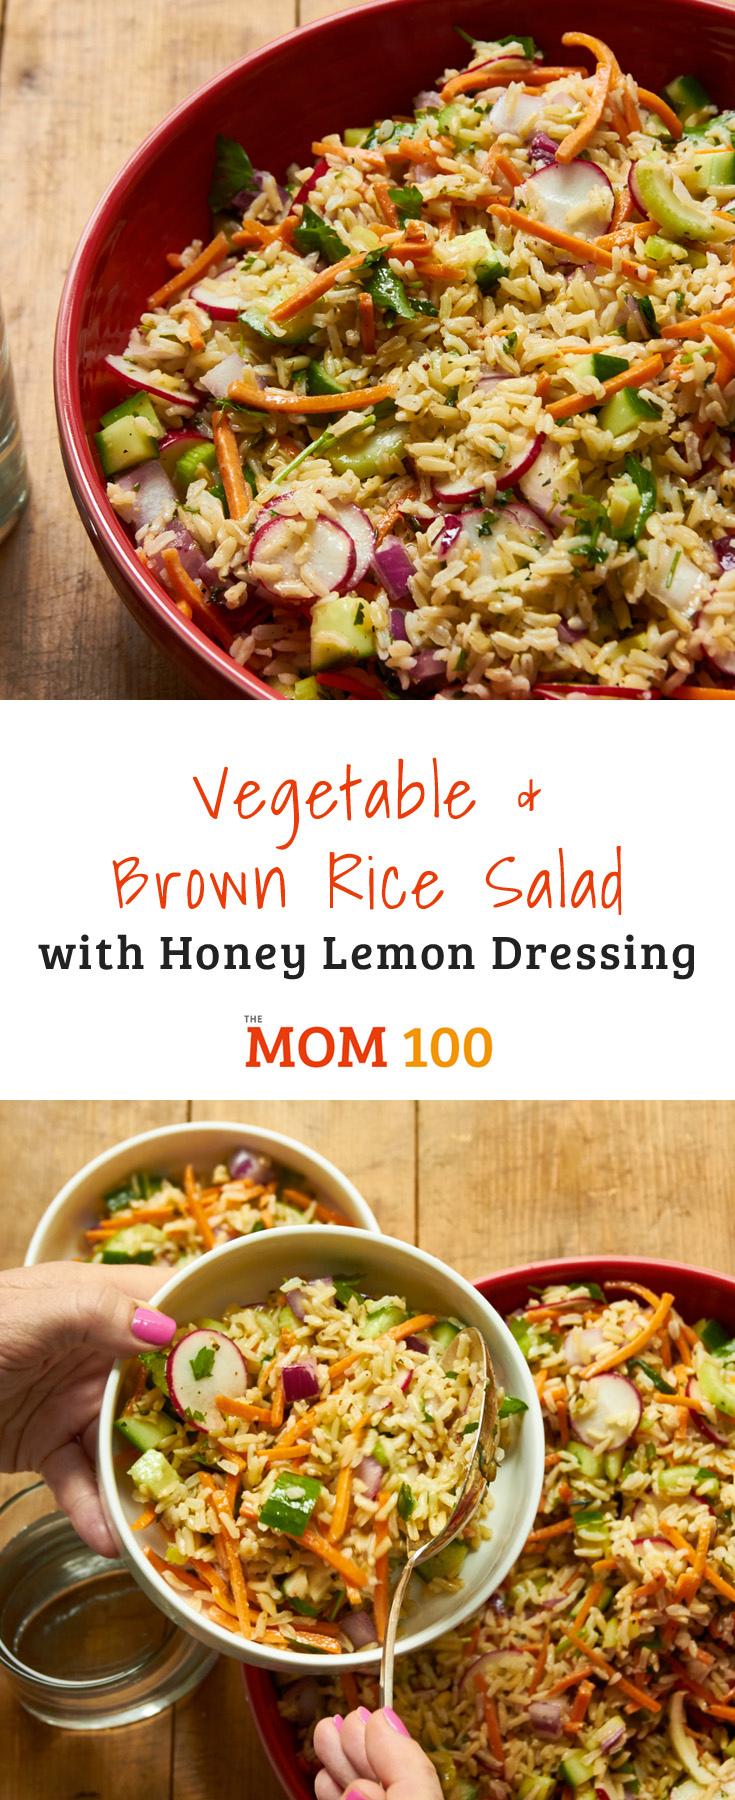 This Vegetable and Brown Rice Salad is the vegetarian side dish you're always looking for when you're hosting a crowd or going to a potluck.